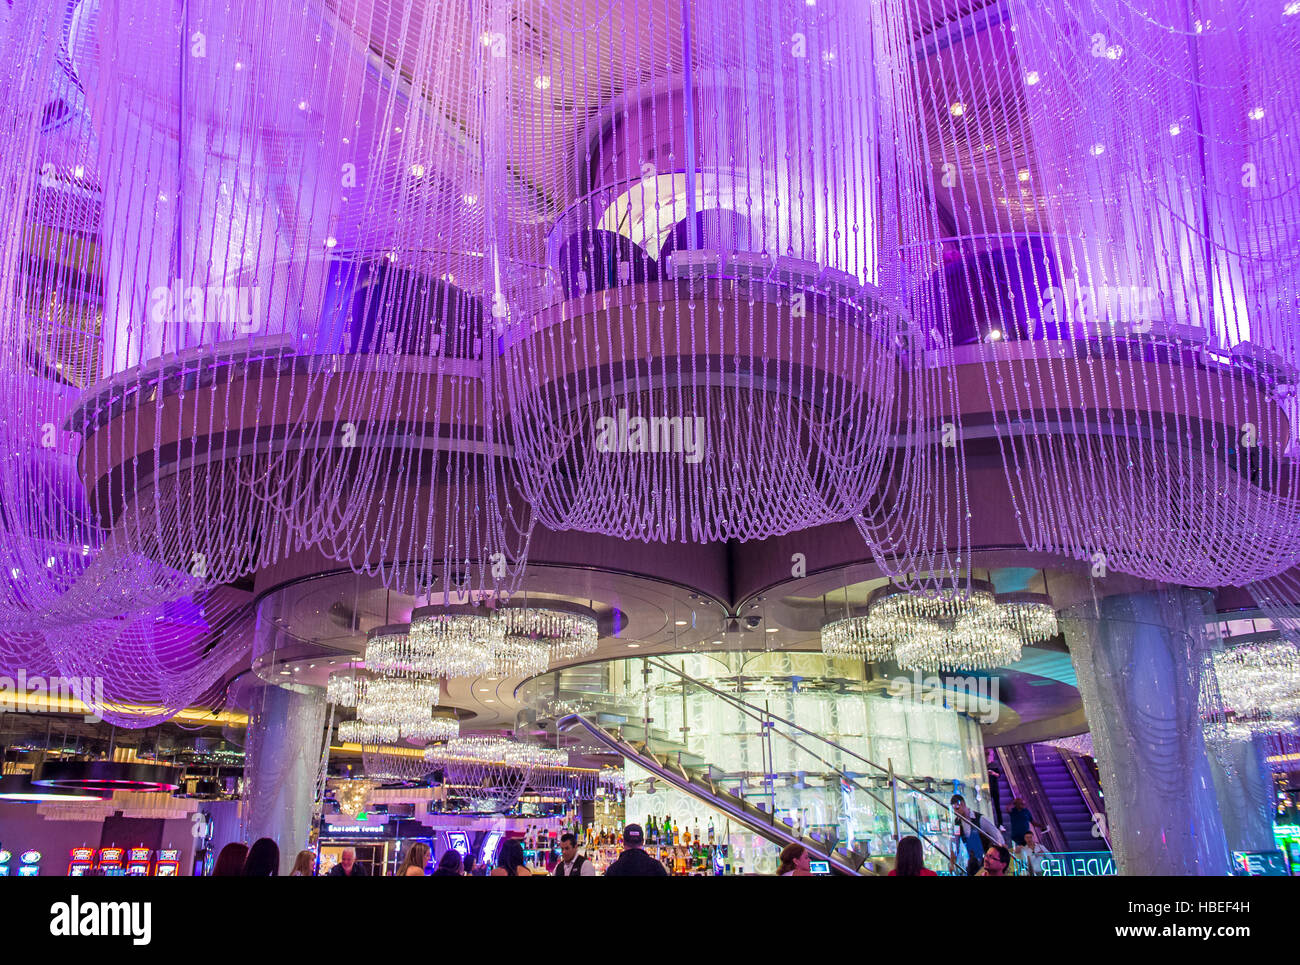 Las vegas oct 05 the chandelier bar at the cosmopolitan hotel las vegas oct 05 the chandelier bar at the cosmopolitan hotel casino in las vegas on october 05 2016 this tri level chandelier encases the hote mozeypictures Choice Image